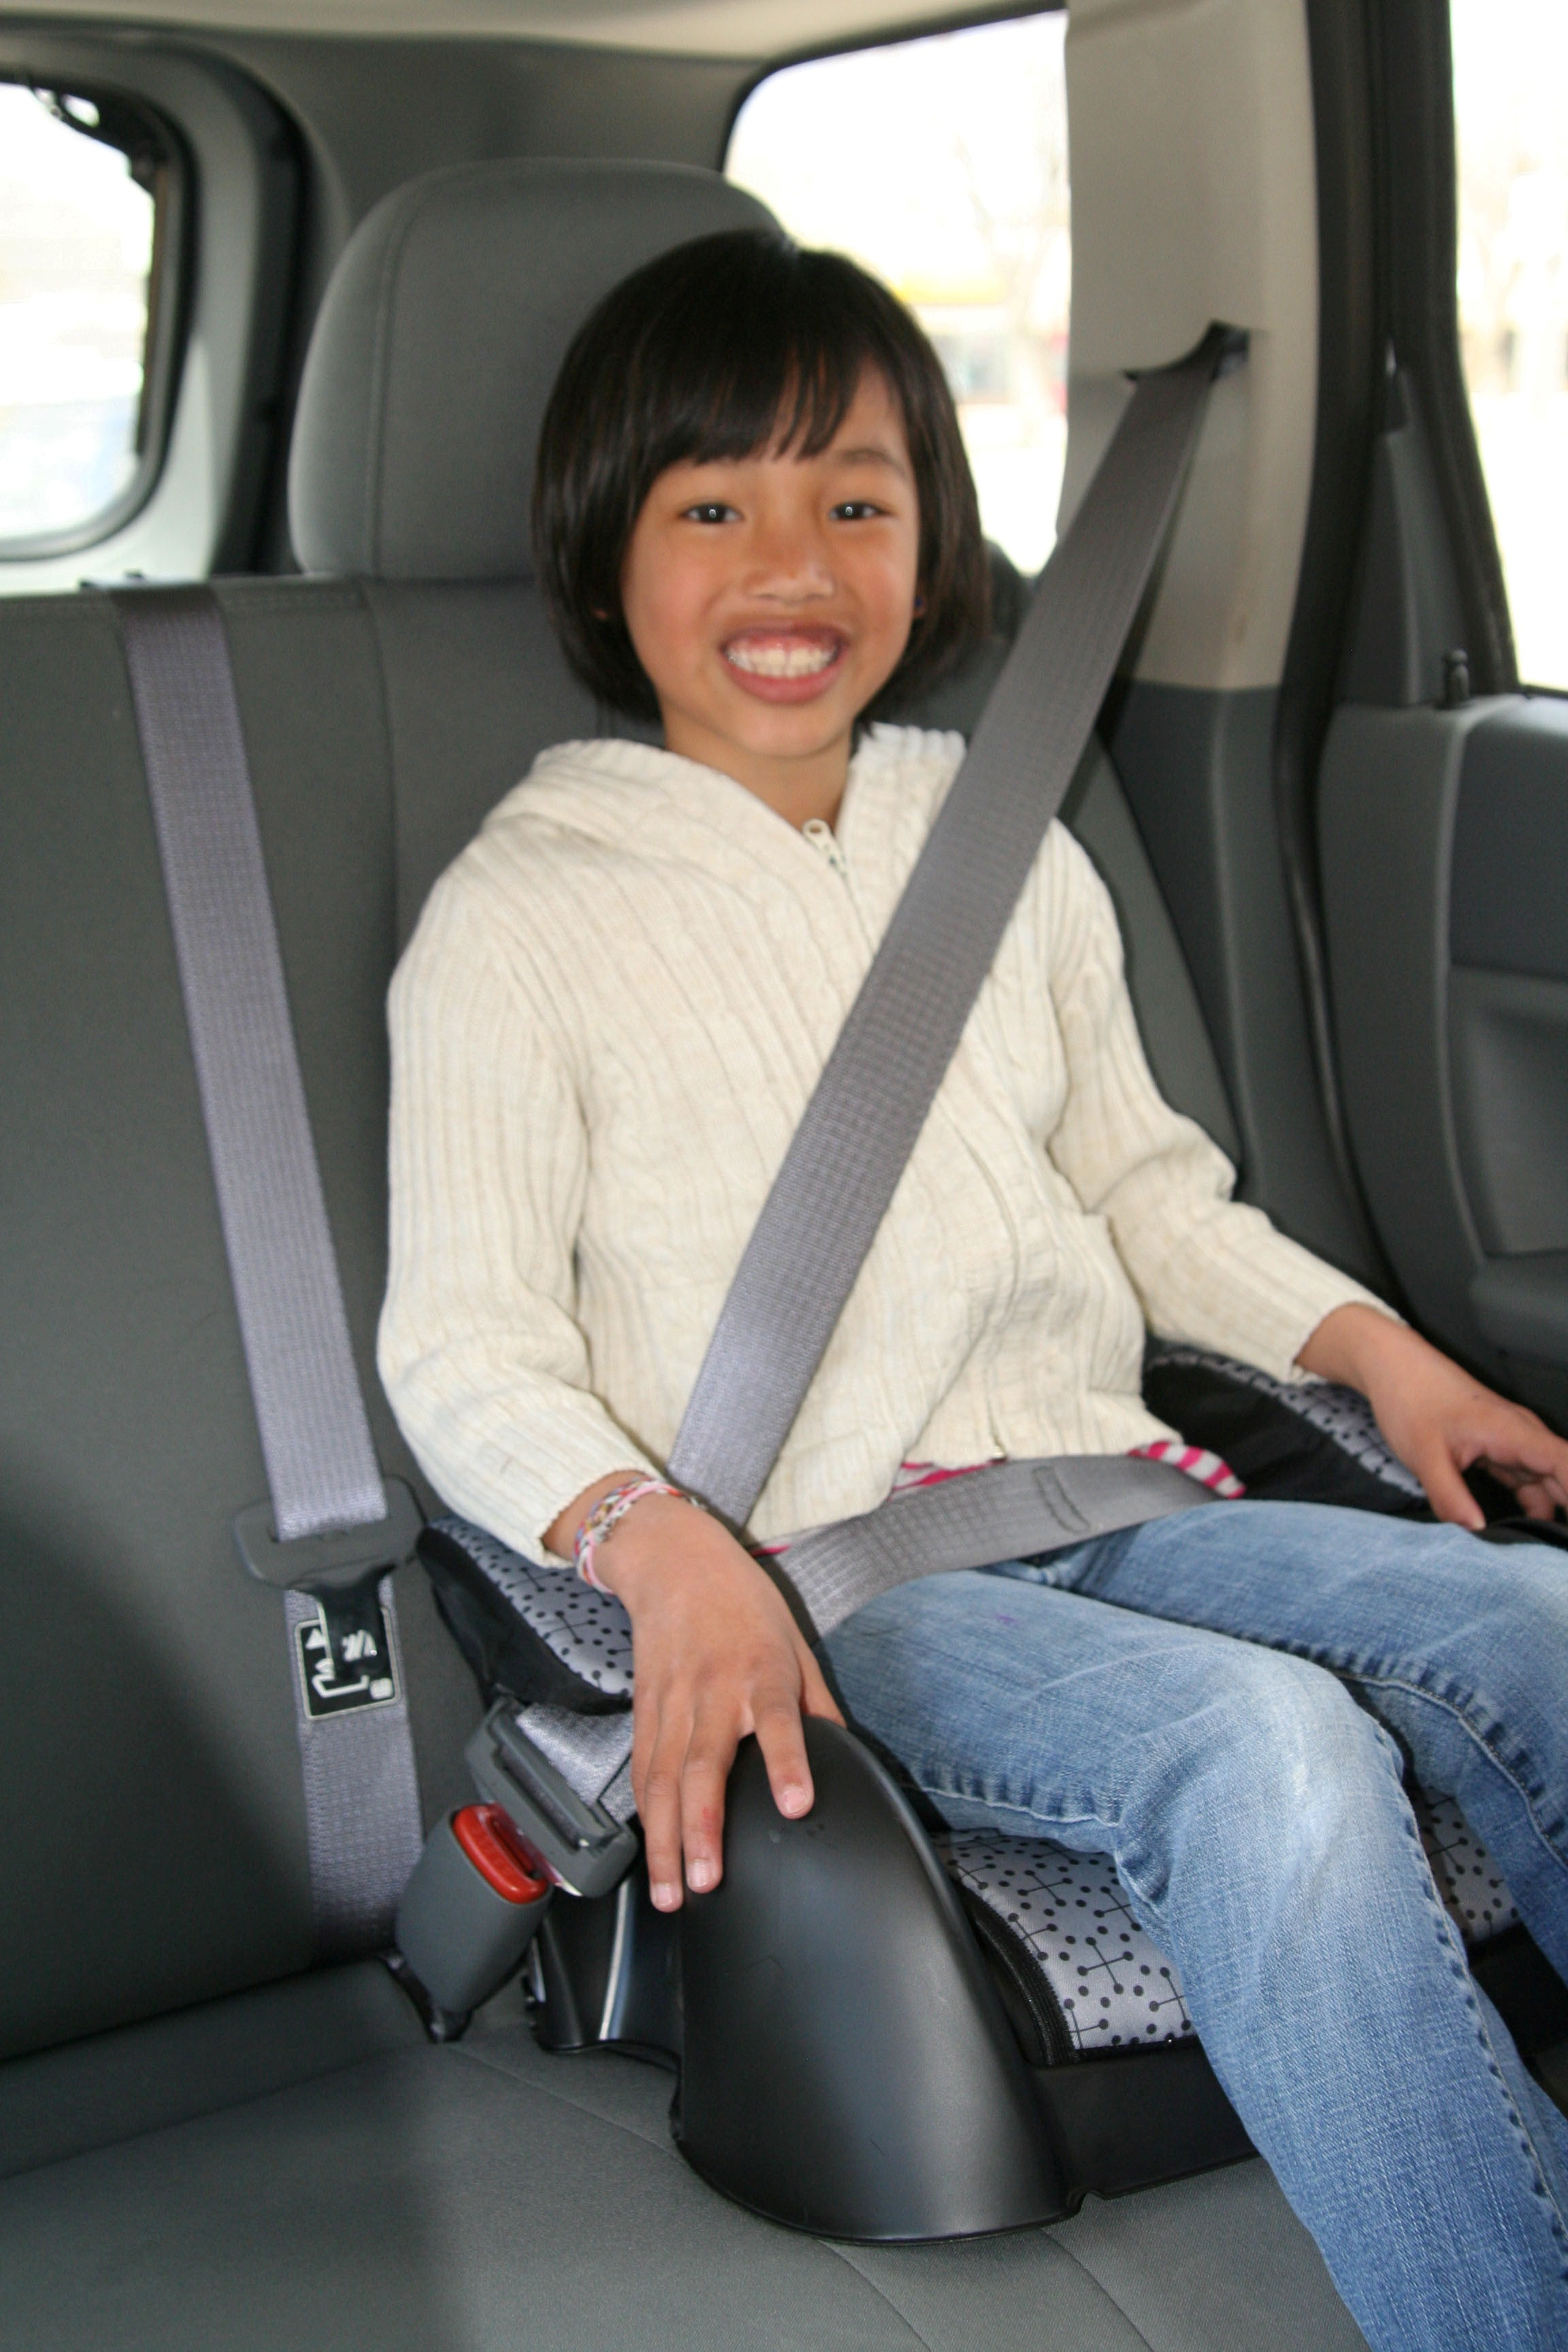 Swell Faq Child Safety Seat Distribution Caraccident5 Cool Chair Designs And Ideas Caraccident5Info